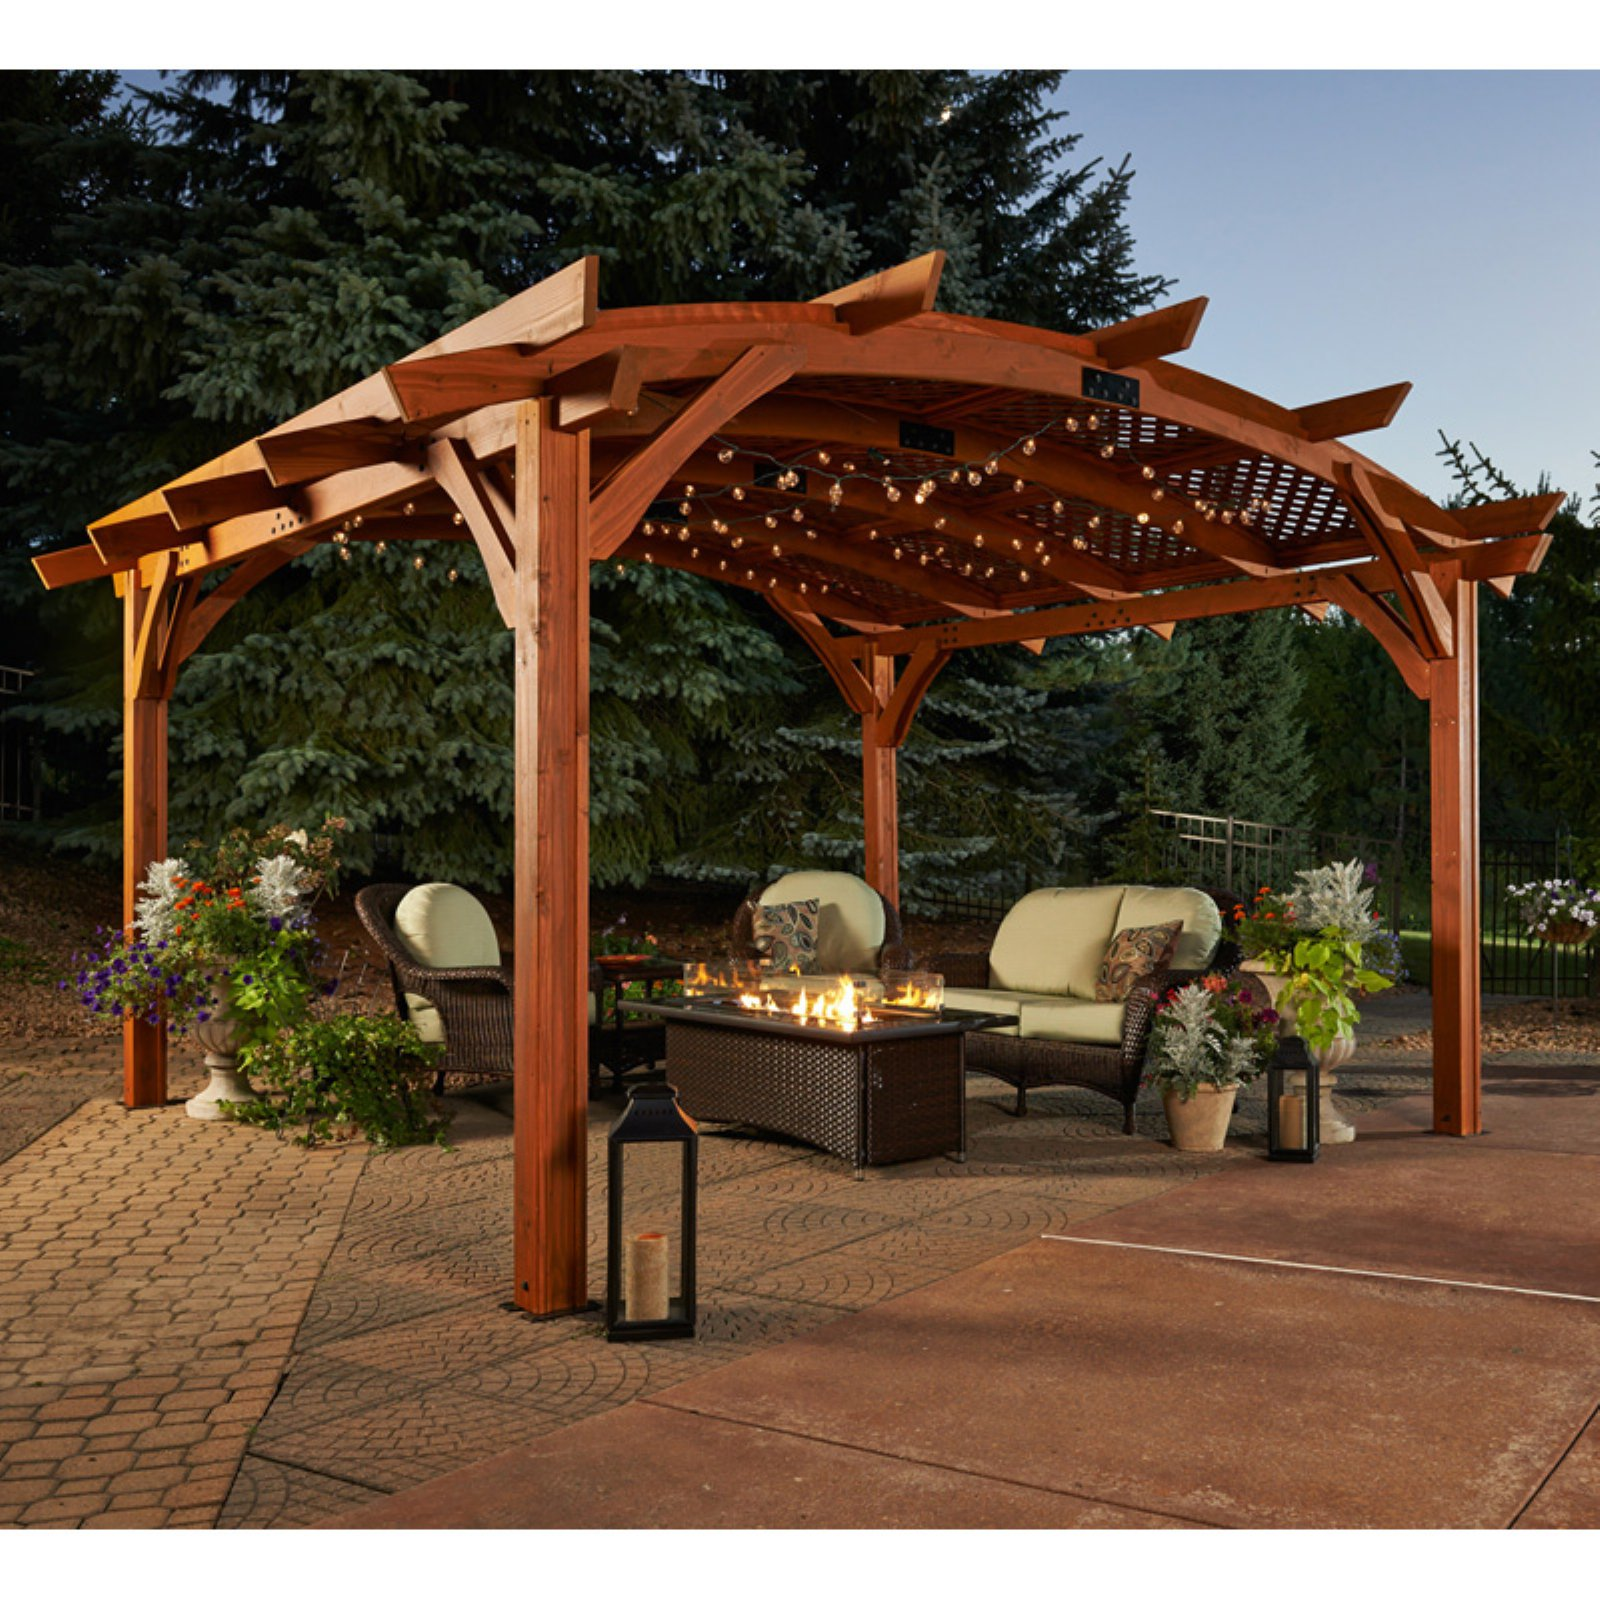 Sonoma 12 x 16 ft. Arched Wood Pergola Redwood by The Outdoor GreatRoom Company